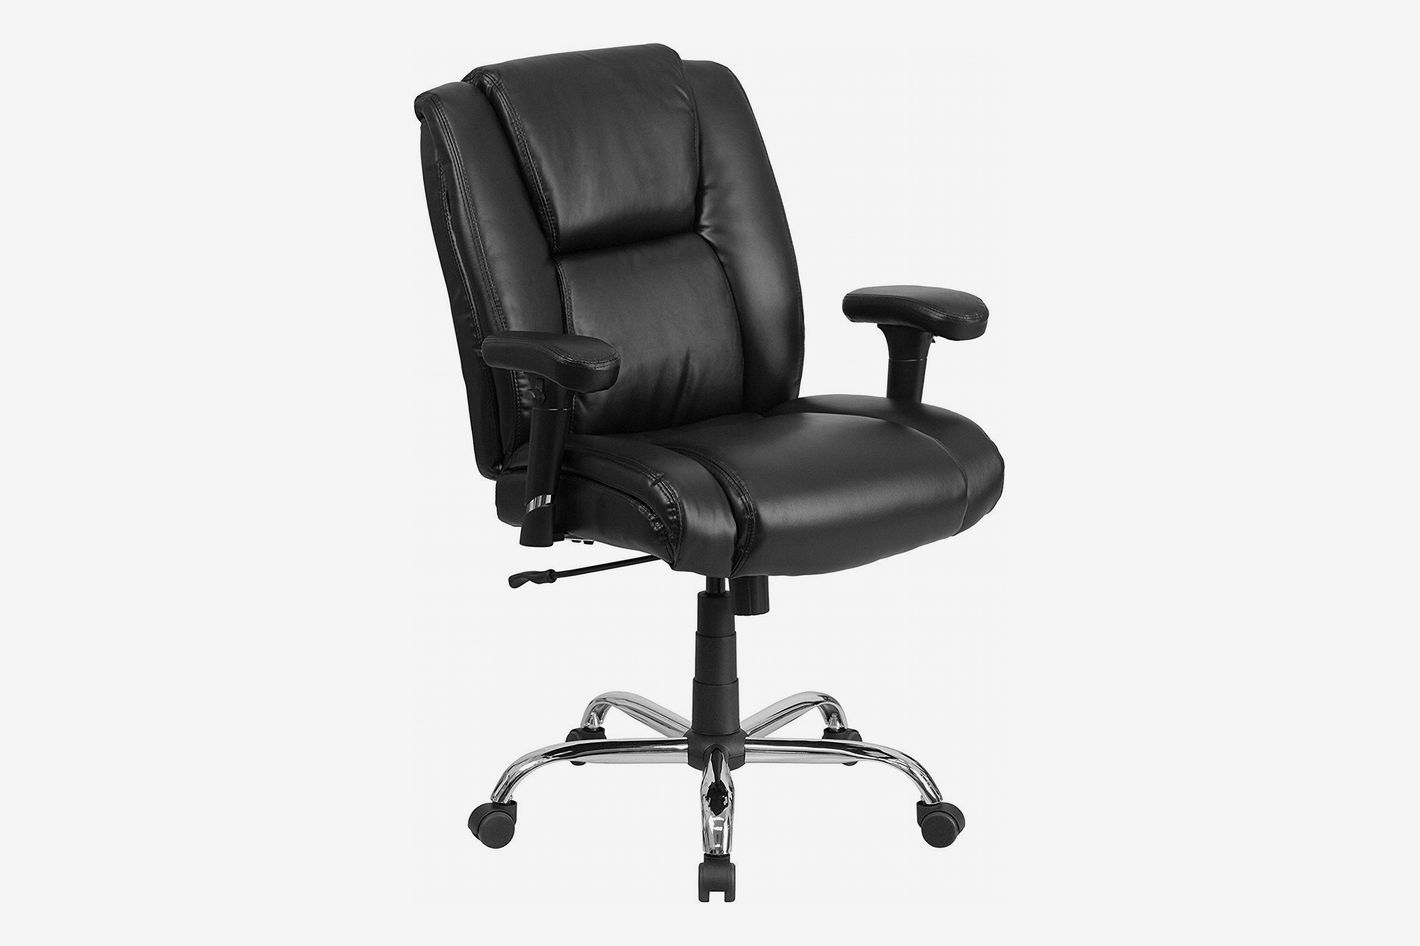 Swell 19 Best Office Chairs And Home Office Chairs 2019 Home Interior And Landscaping Ologienasavecom